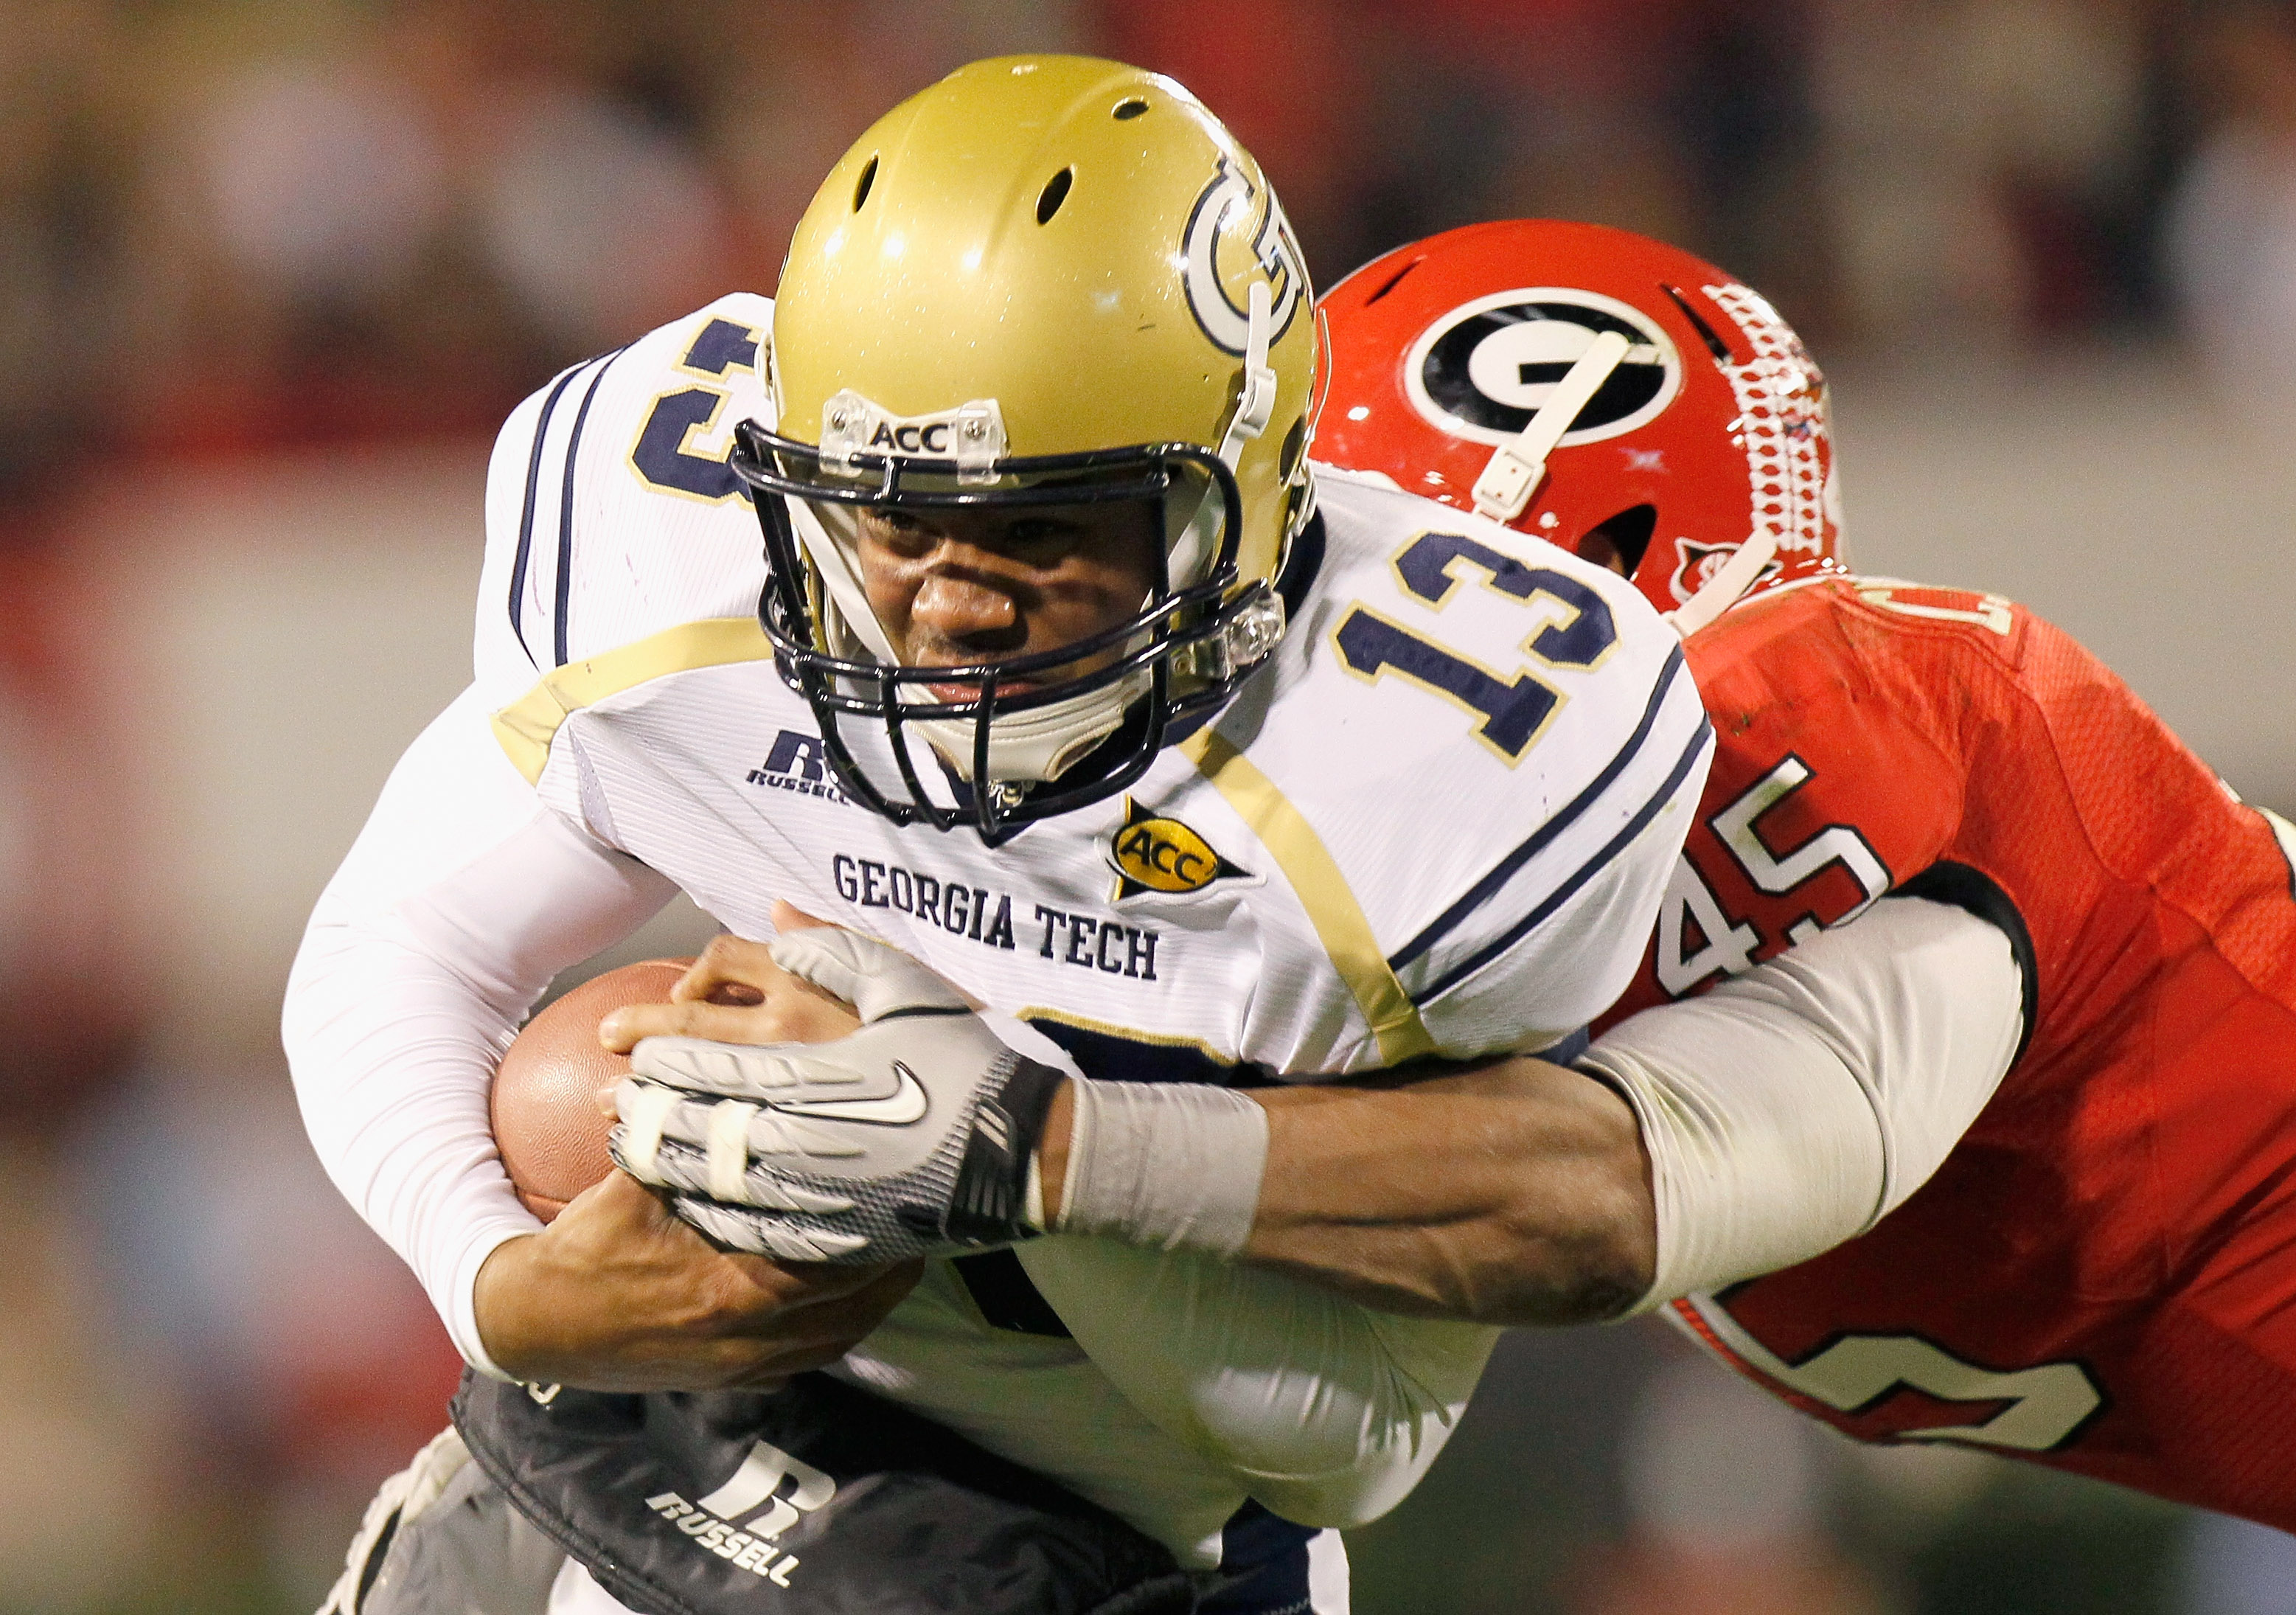 ATHENS, GA - NOVEMBER 27:  Quarterback Tevin Washington #13 of the Georgia Tech Yellow Jackets is tackled by Christian Robinson #45 the Georgia Bulldogs at Sanford Stadium on November 27, 2010 in Athens, Georgia.  (Photo by Kevin C. Cox/Getty Images)